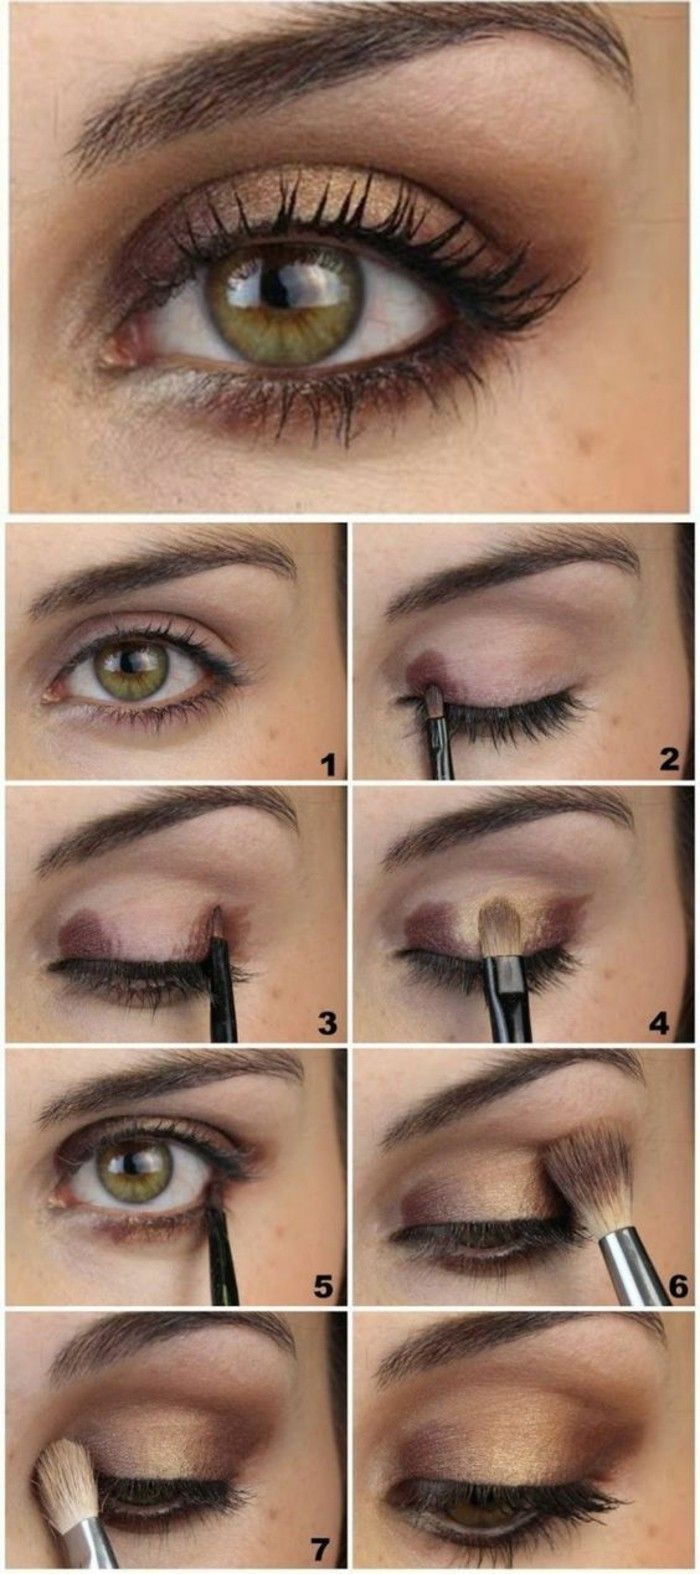 how to make up green eyes? 50 tips in photos and videos